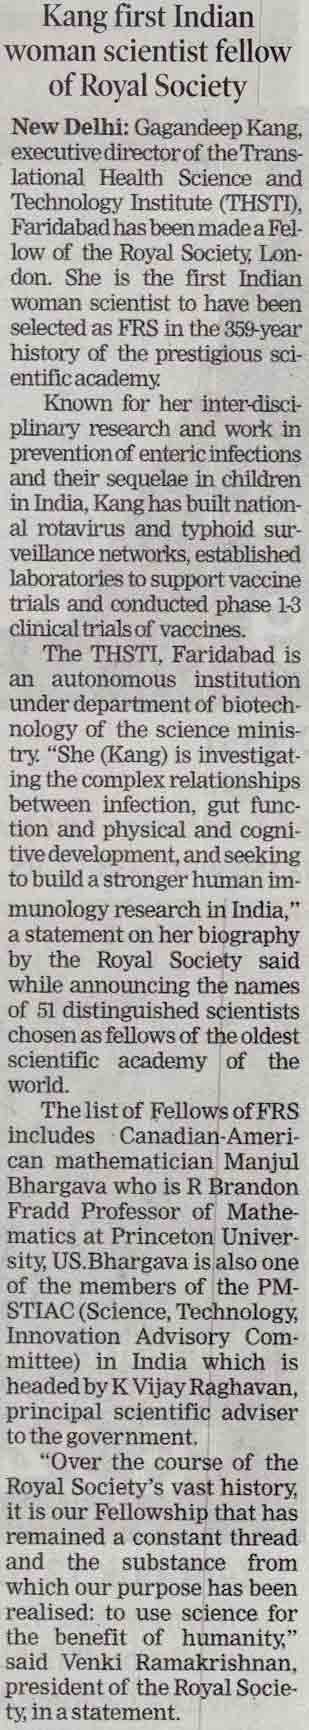 Kang first Indian woman scientist fellow of Royal society